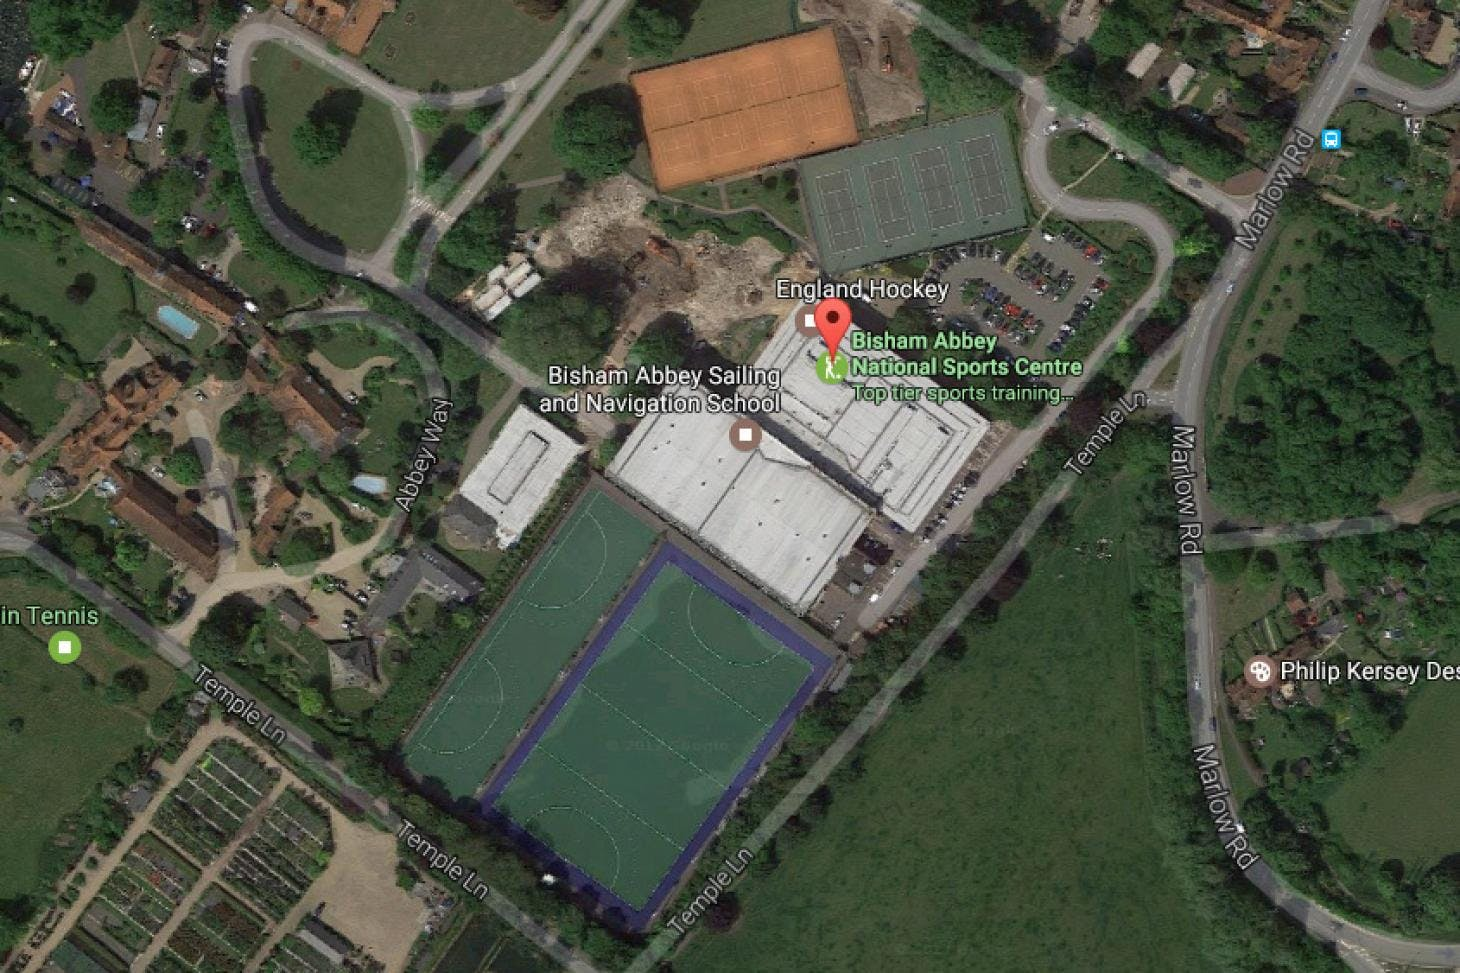 Bisham Abbey National Sports Centre Outdoor | 3G Astroturf hockey pitch